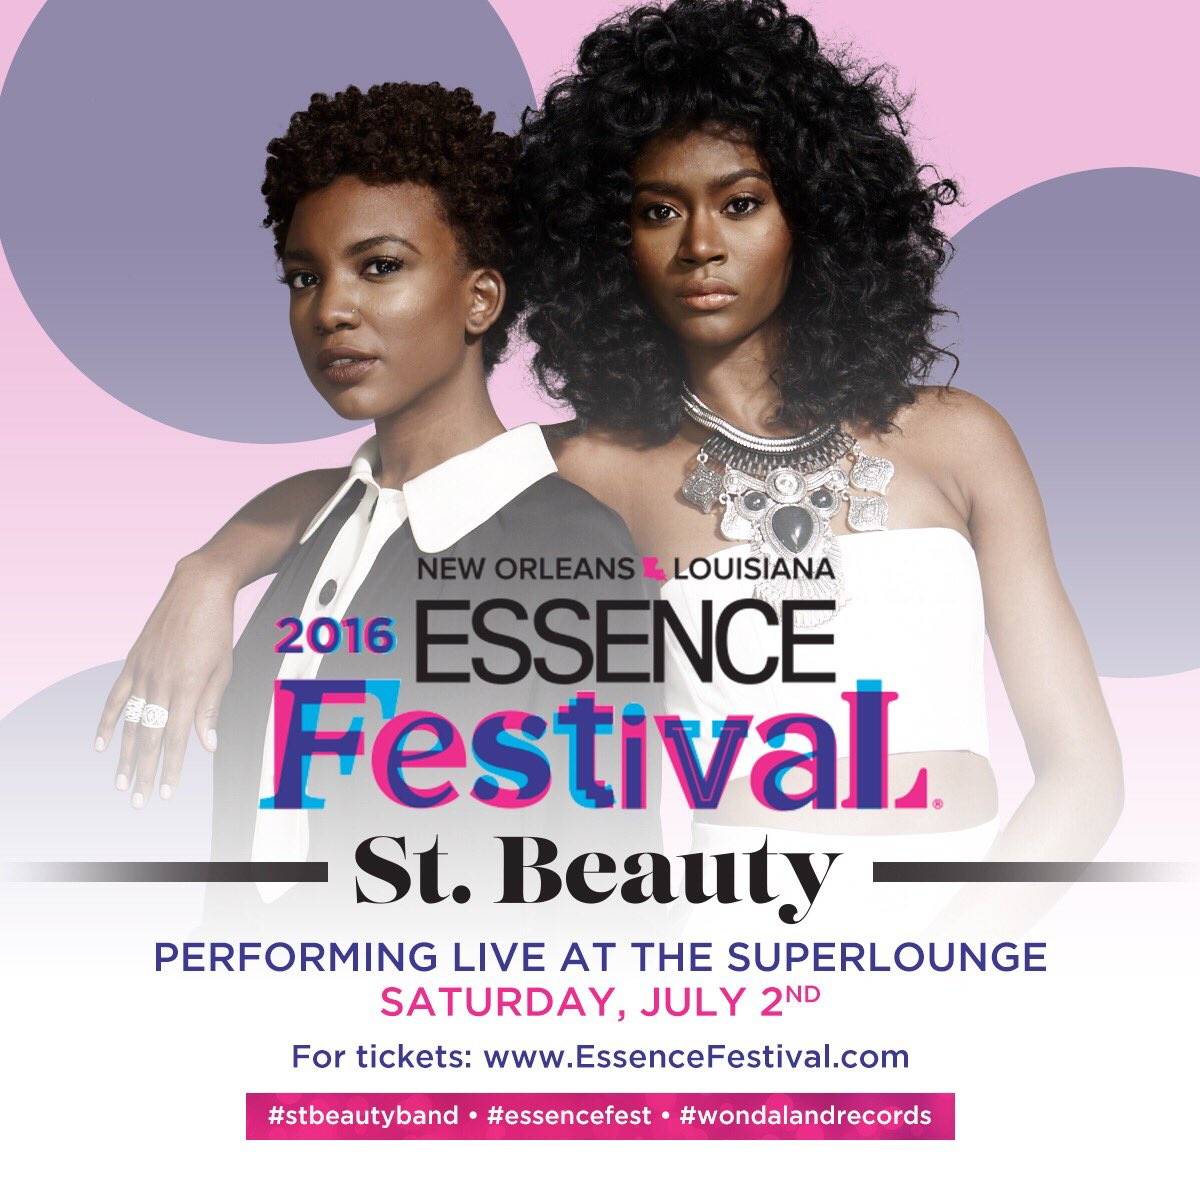 #BlackGirlMagic is coming to the 2016 @EssenceFest ! #StBeautyBand #EssenceFest #WondalandRecords https://t.co/TWMbVAUX8N